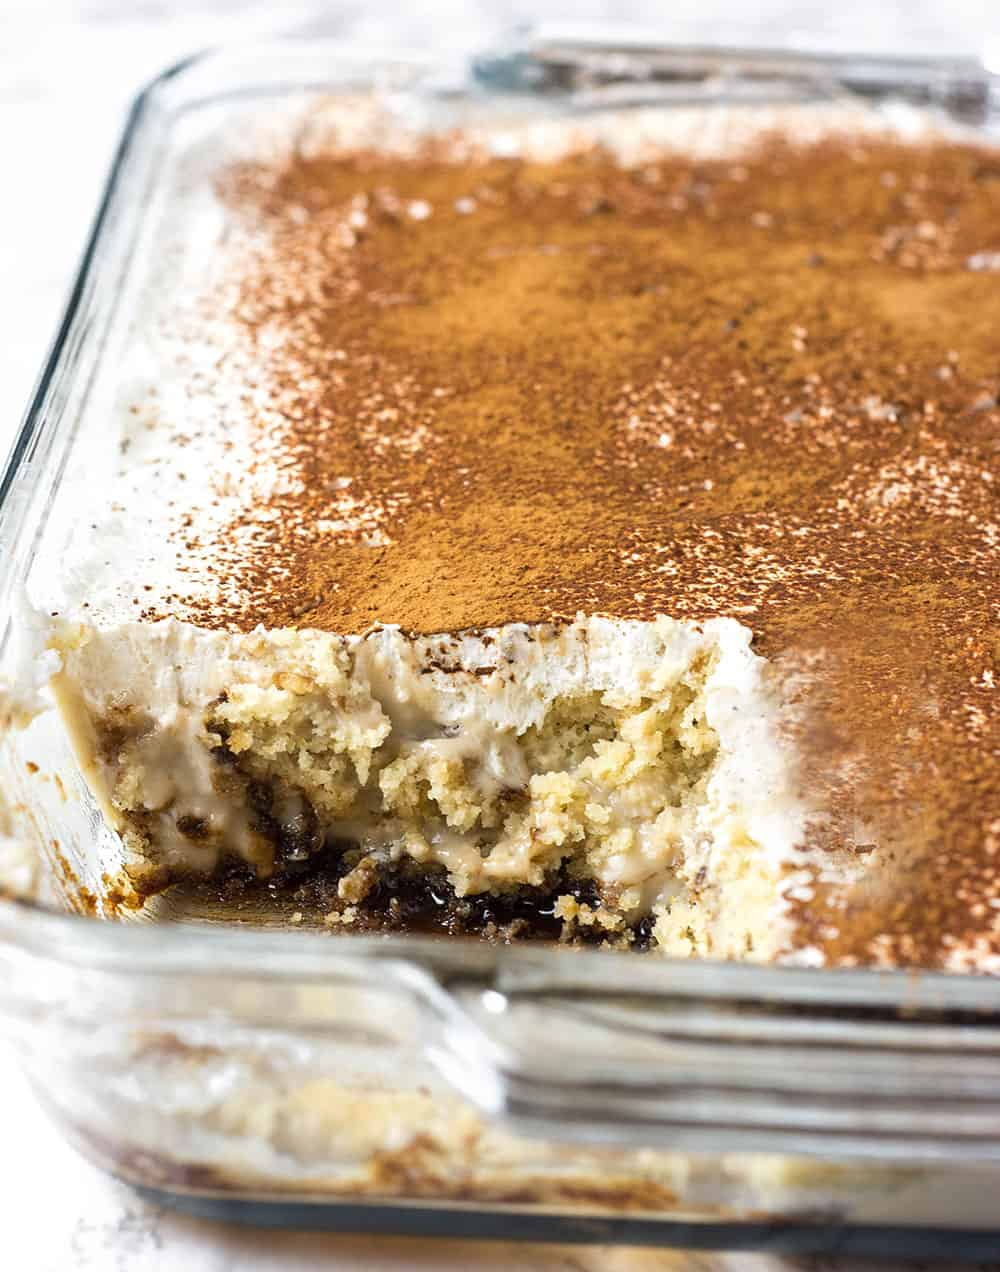 Tiramisu Cake Layering in Pan